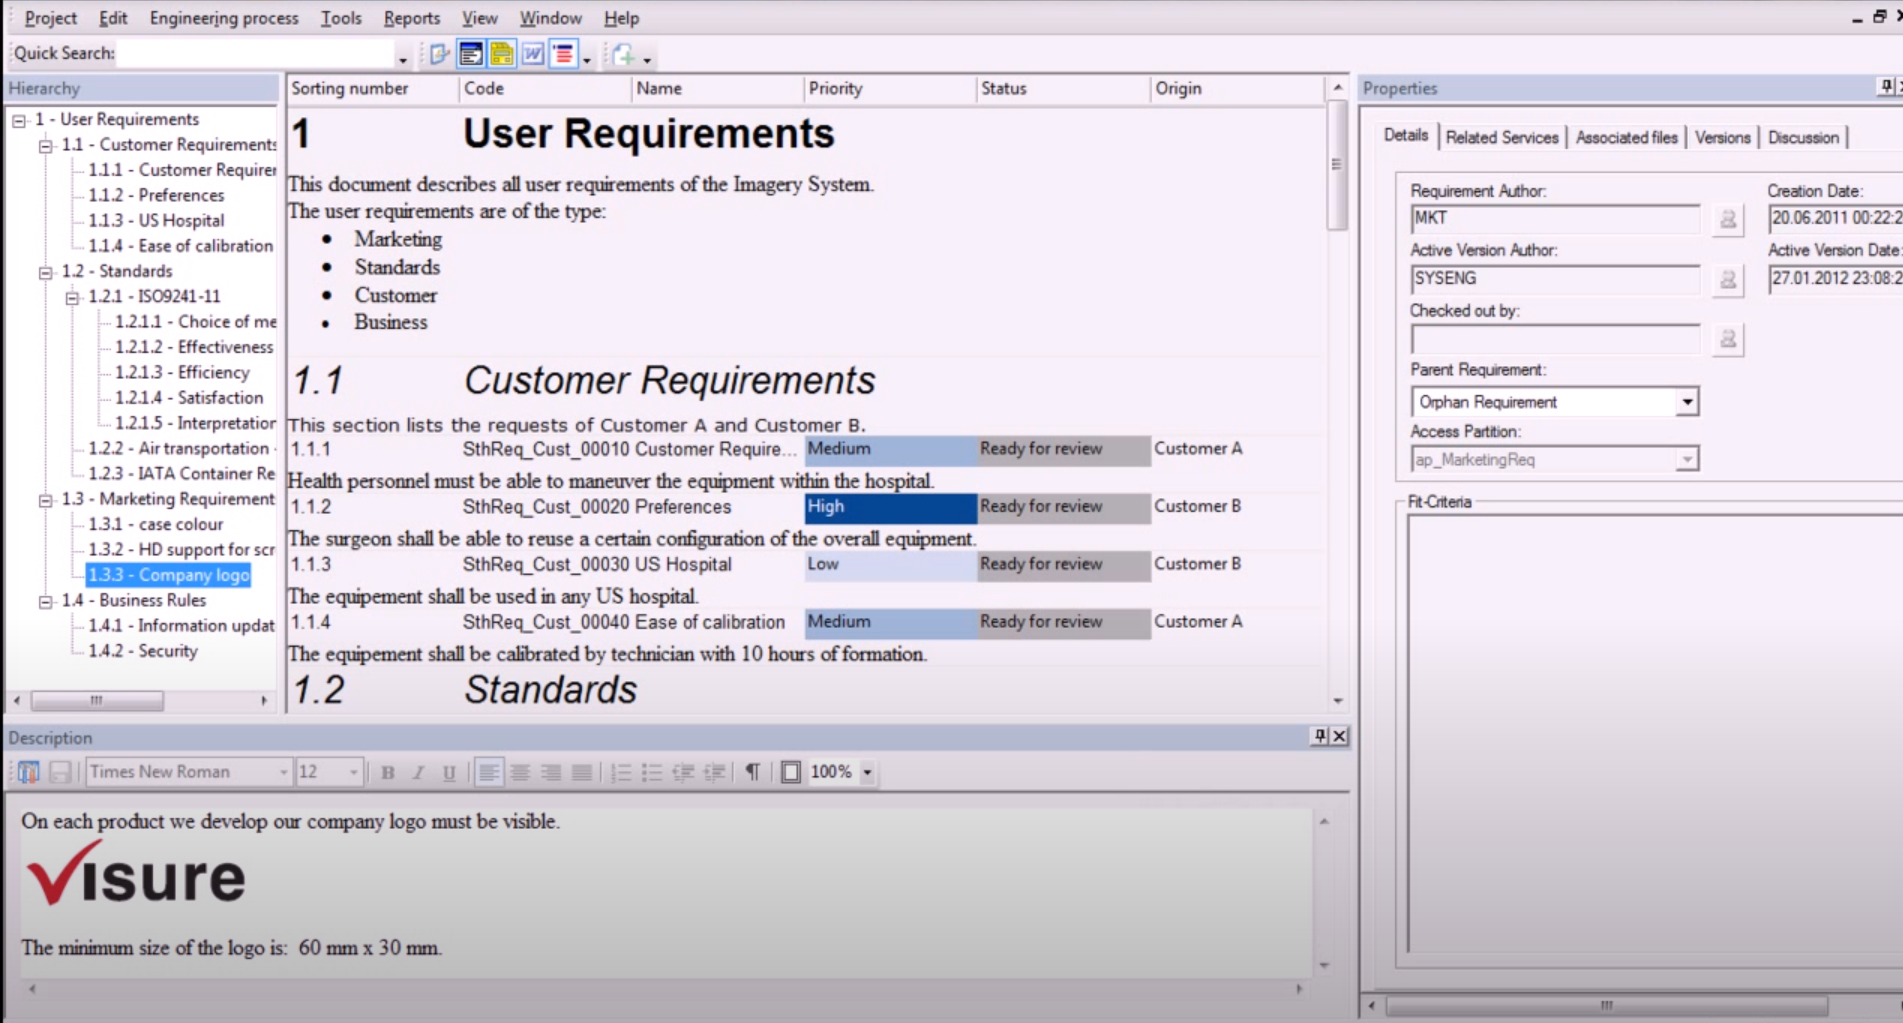 Visure Requirements user requirements